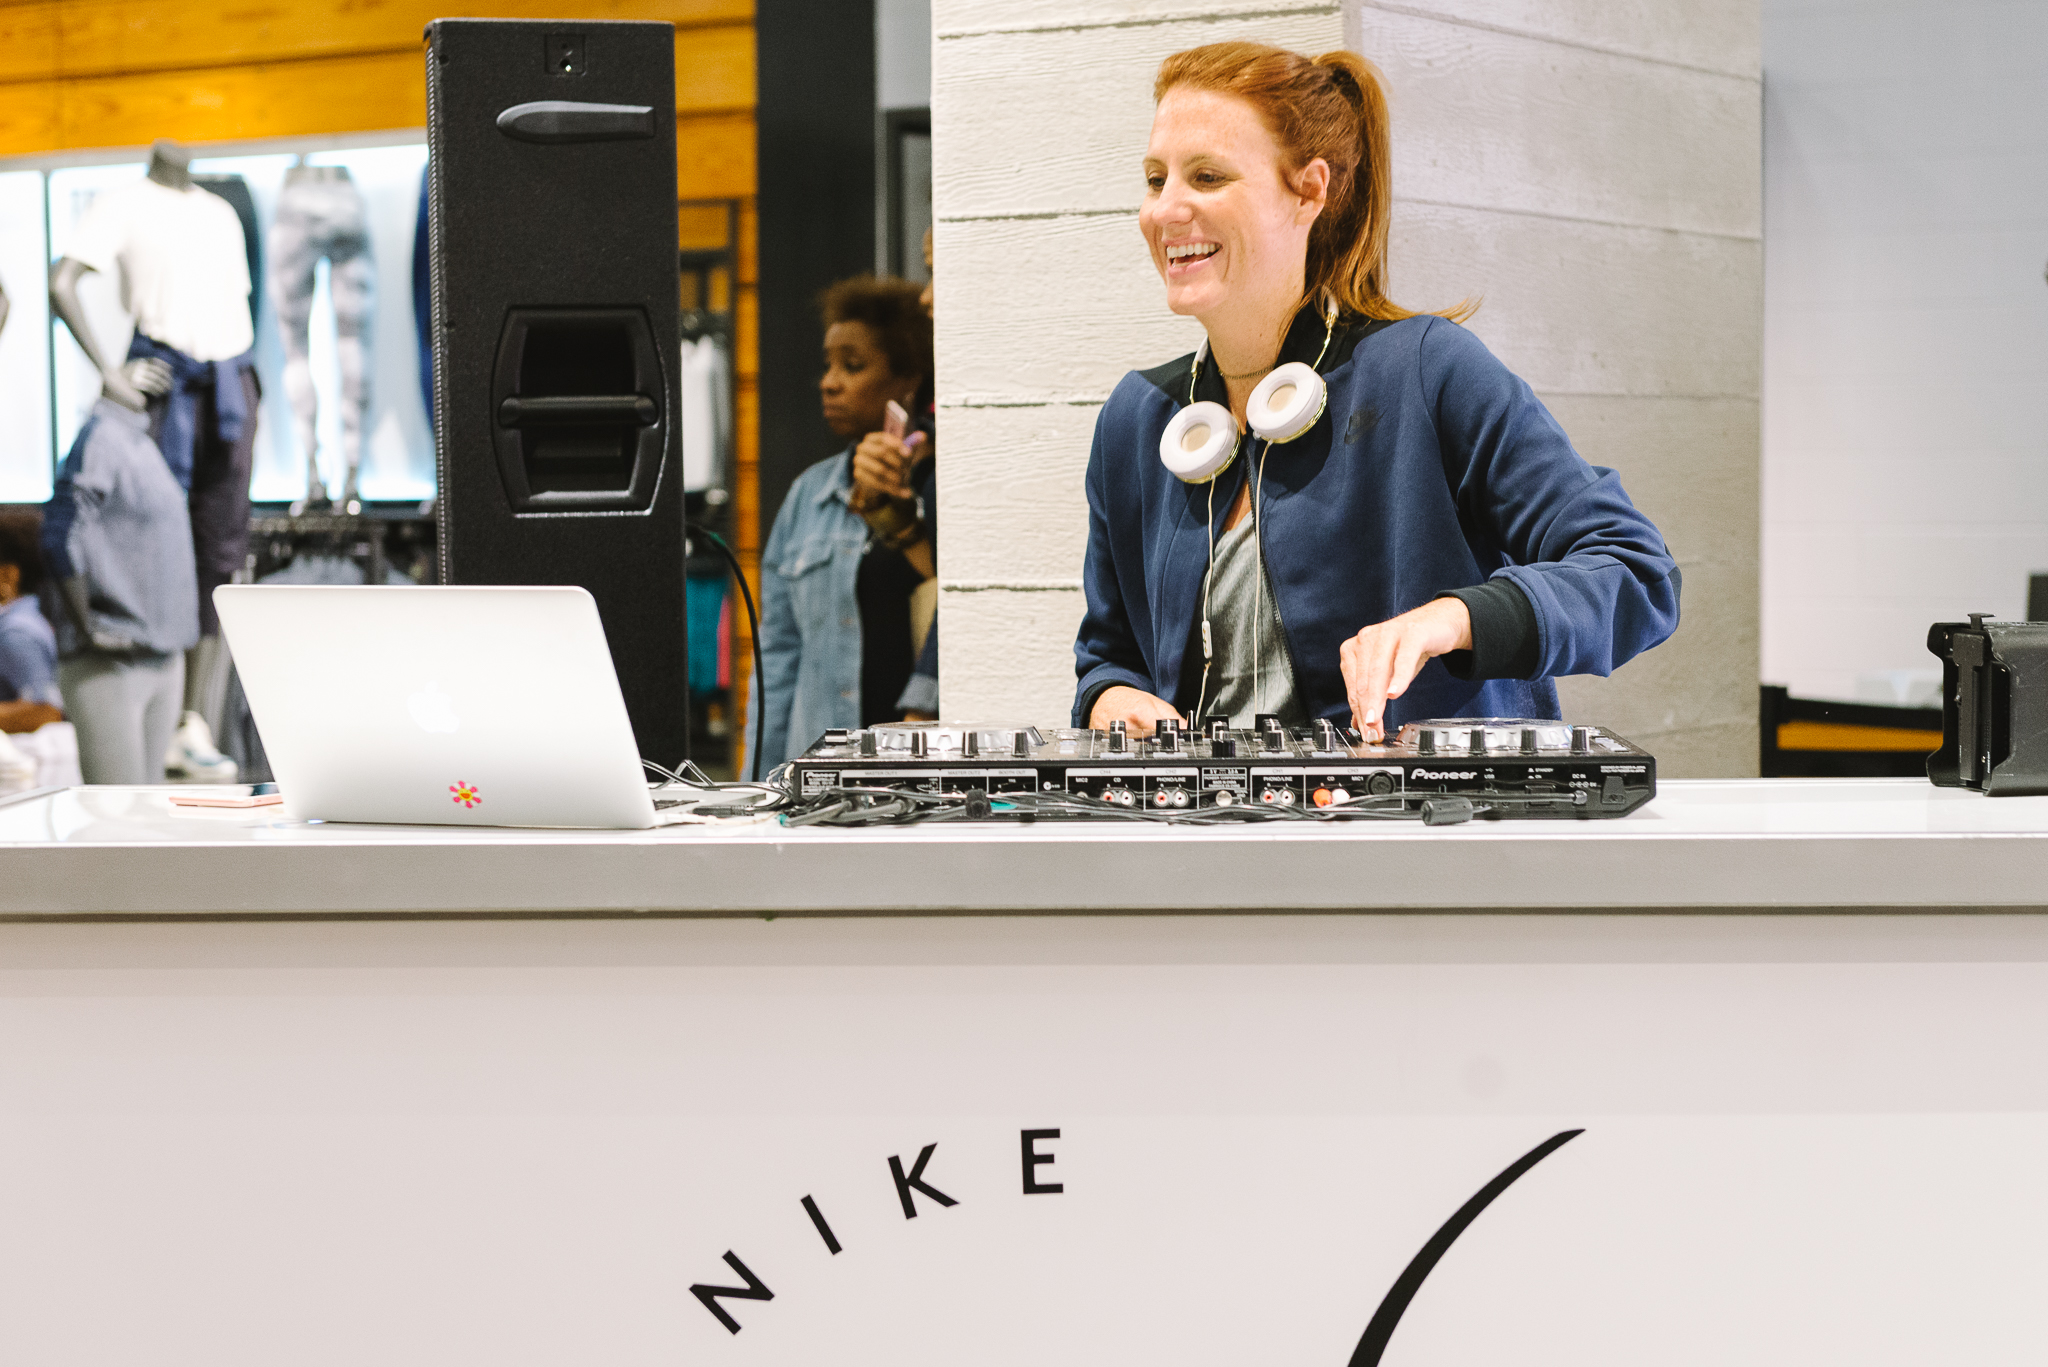 Hayet Rida Chicago Nike Plus Size Line Event Fashion Lifestyle Blogger Nike Air Society Vapor Max 39.jpg